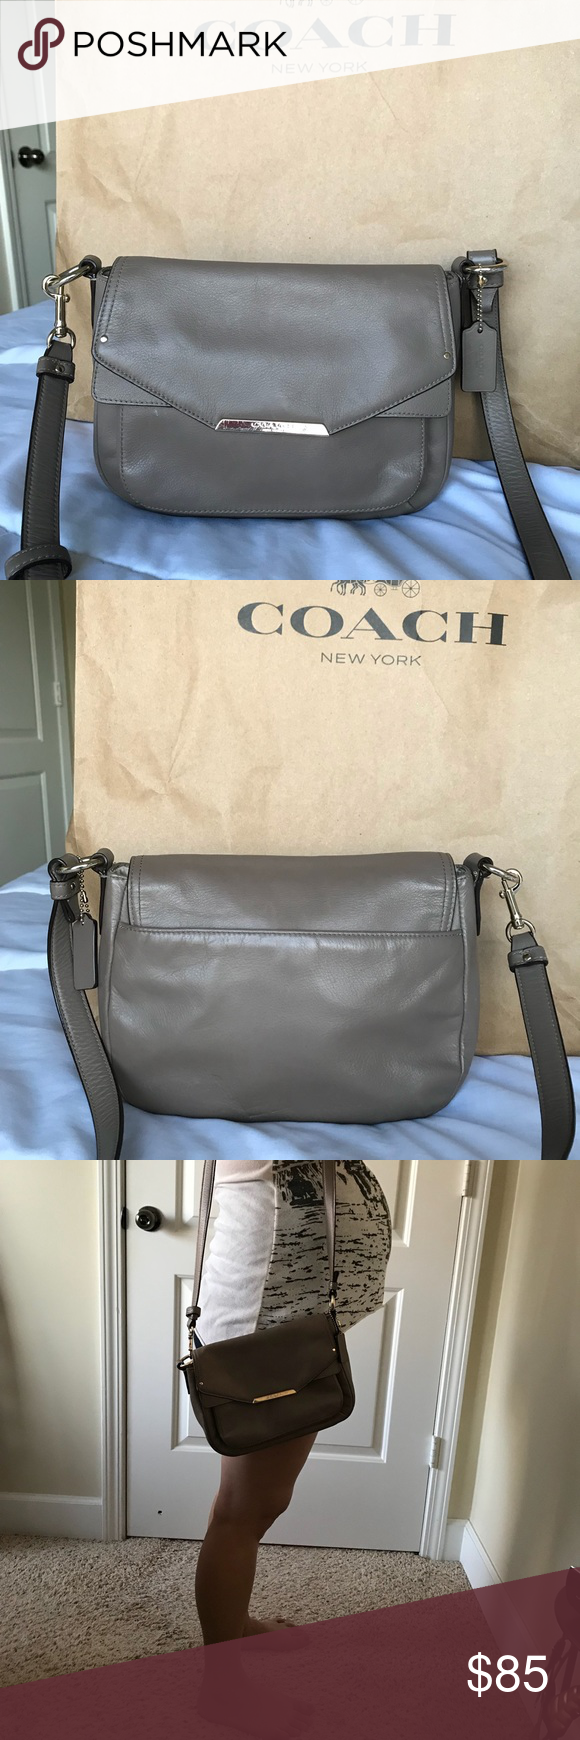 dfc72119b2 sweden do all coach crossbody bags have serial numbers drawn 1058b f017e